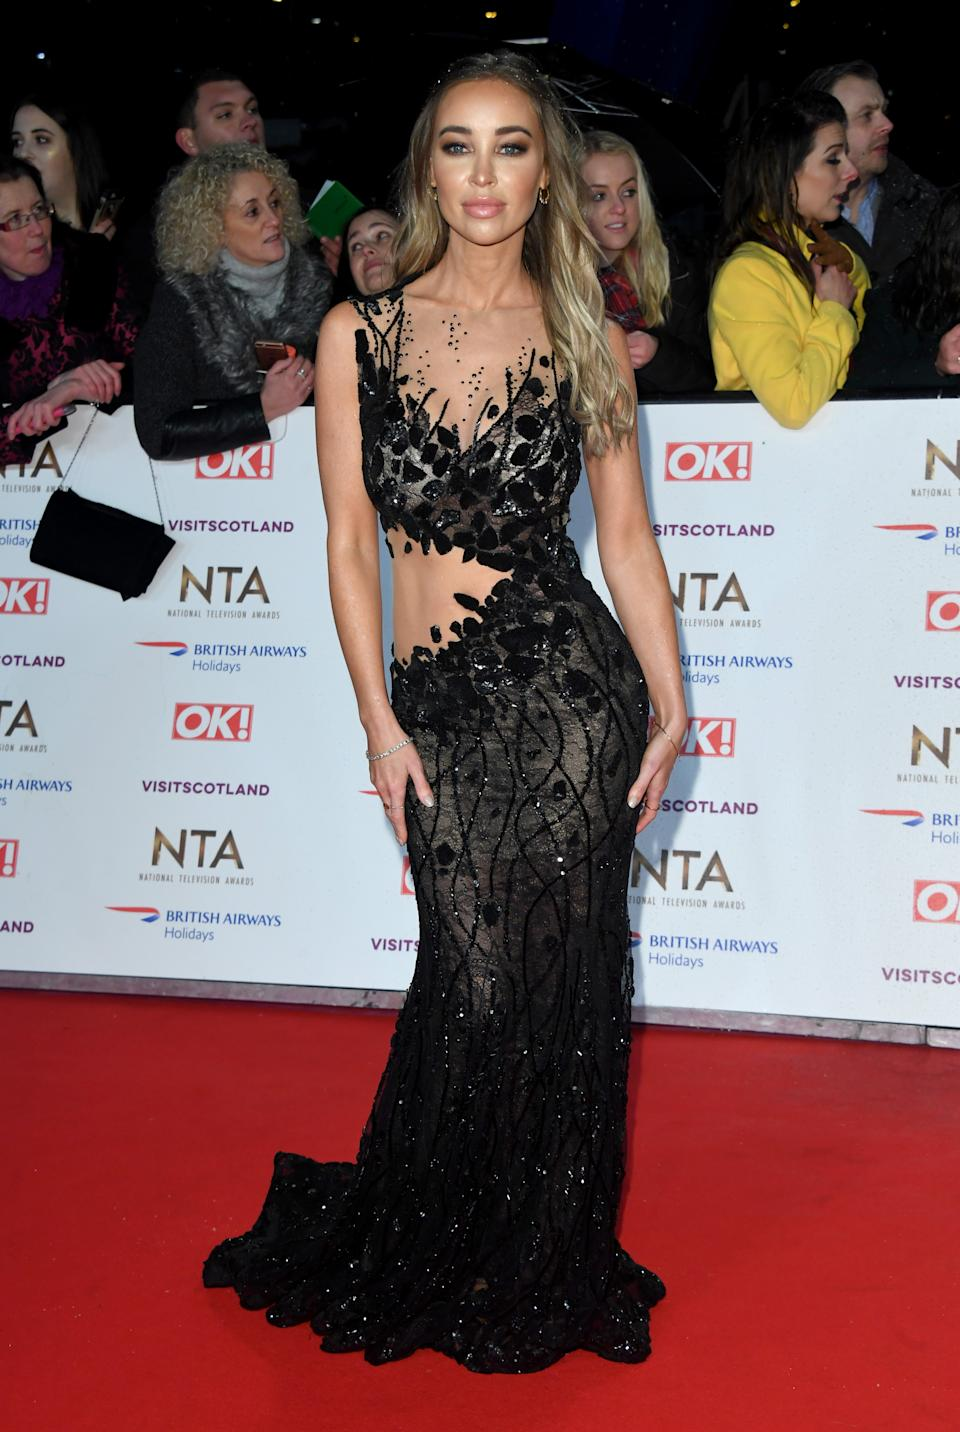 Lauren Pope, who starred in TOWIE until 2019, at the National Television Awards 2019. (Getty Images)